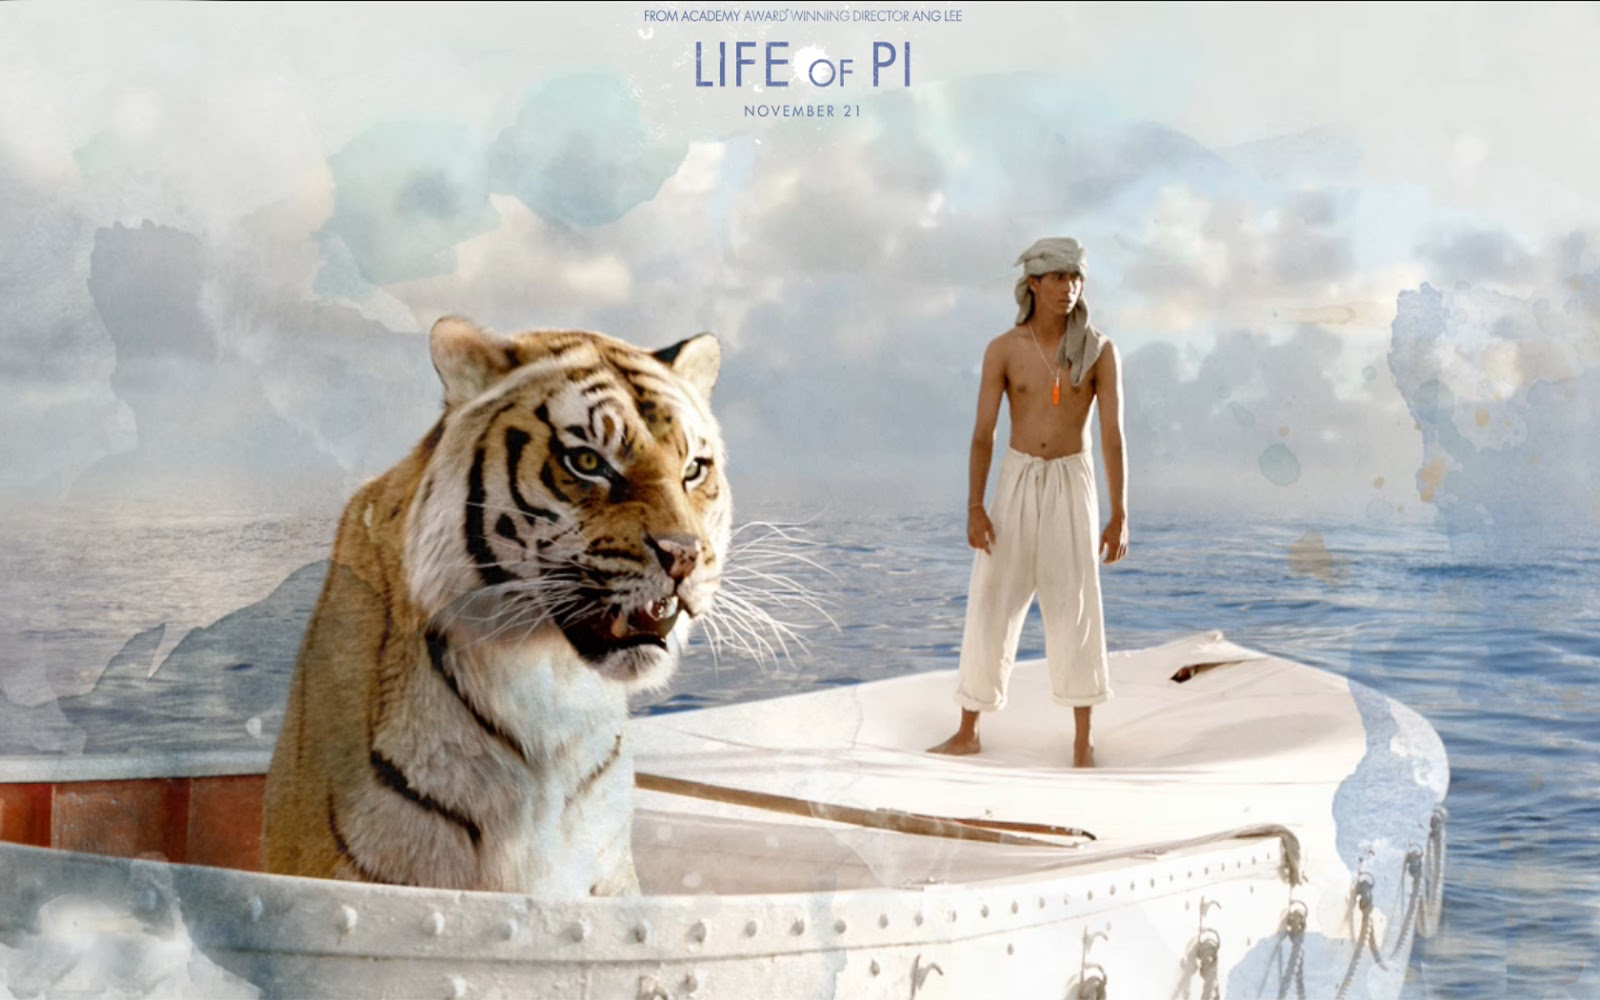 Life of pi wallpapers hd movies hd wallpapers for Life of pi family